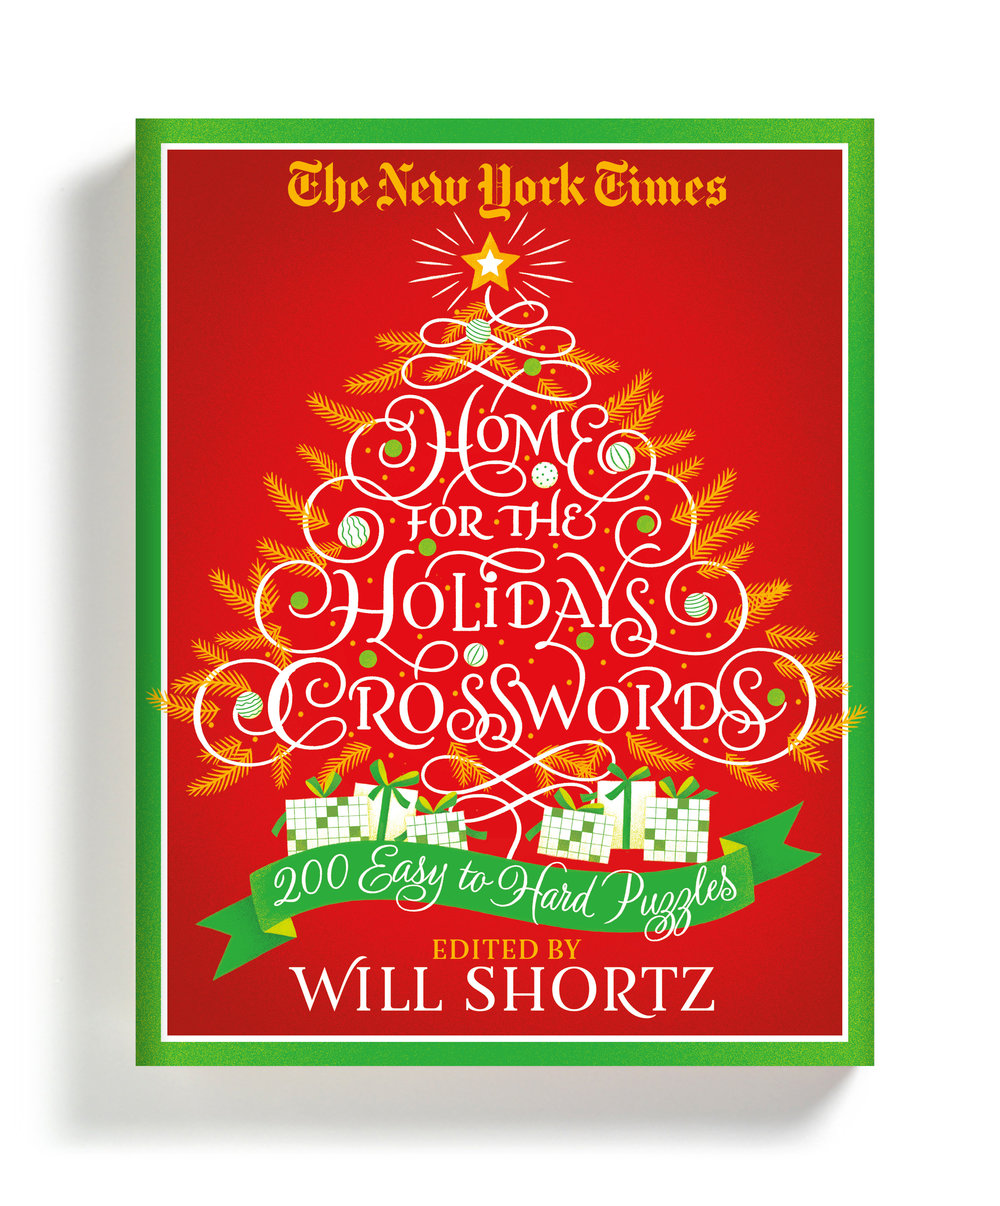 NYT Home for the Holiday Crosswords_3D.jpg